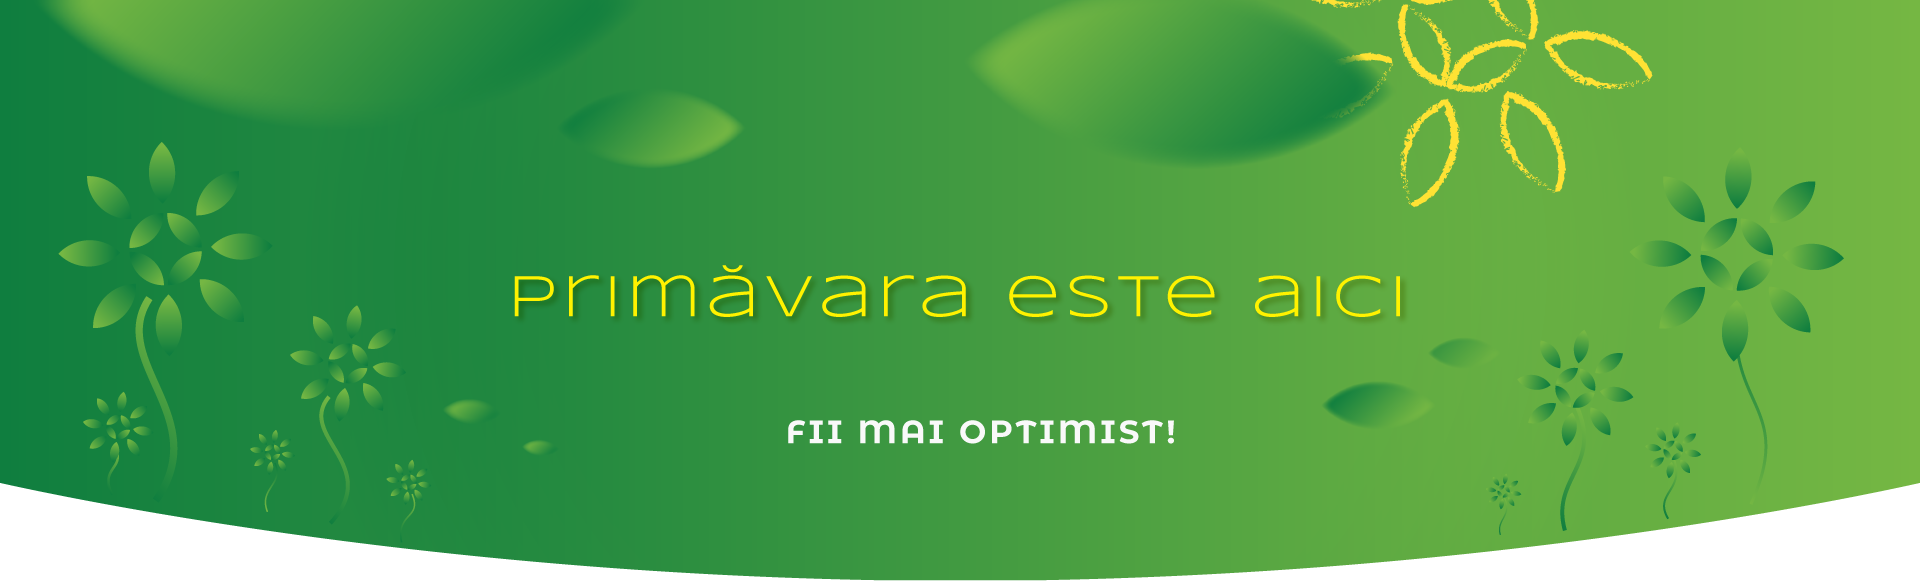 Fii mai optimist!